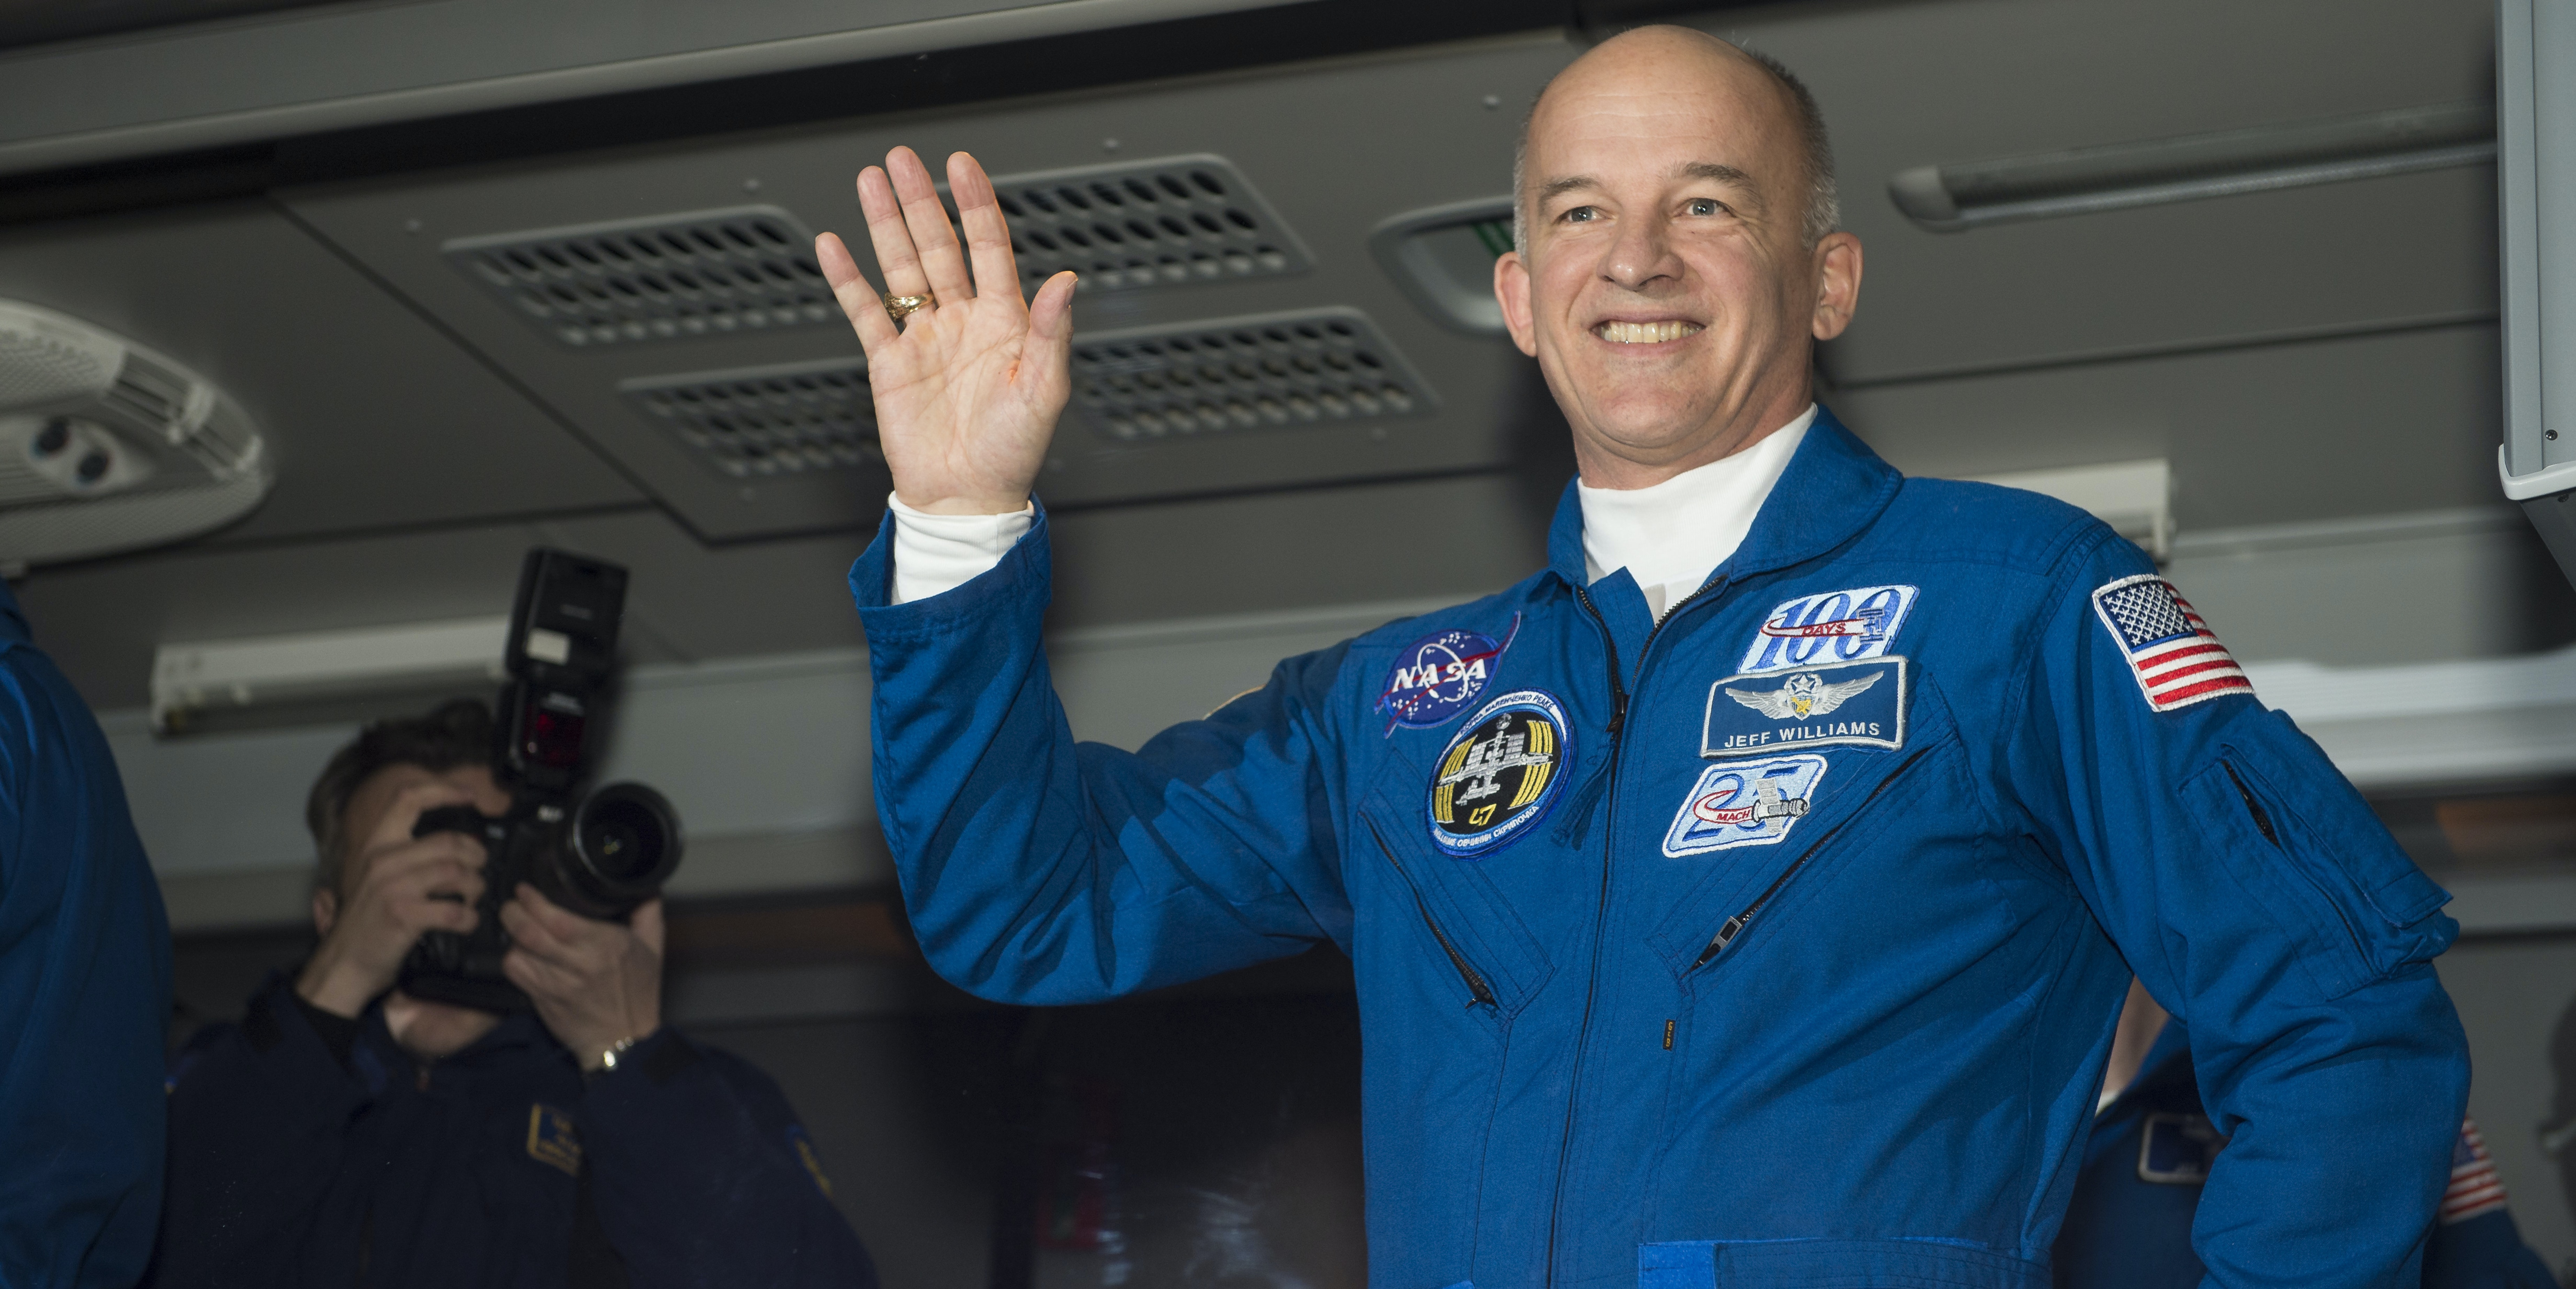 Jeff Williams has now spent more time in space than any other American astronaut in history.